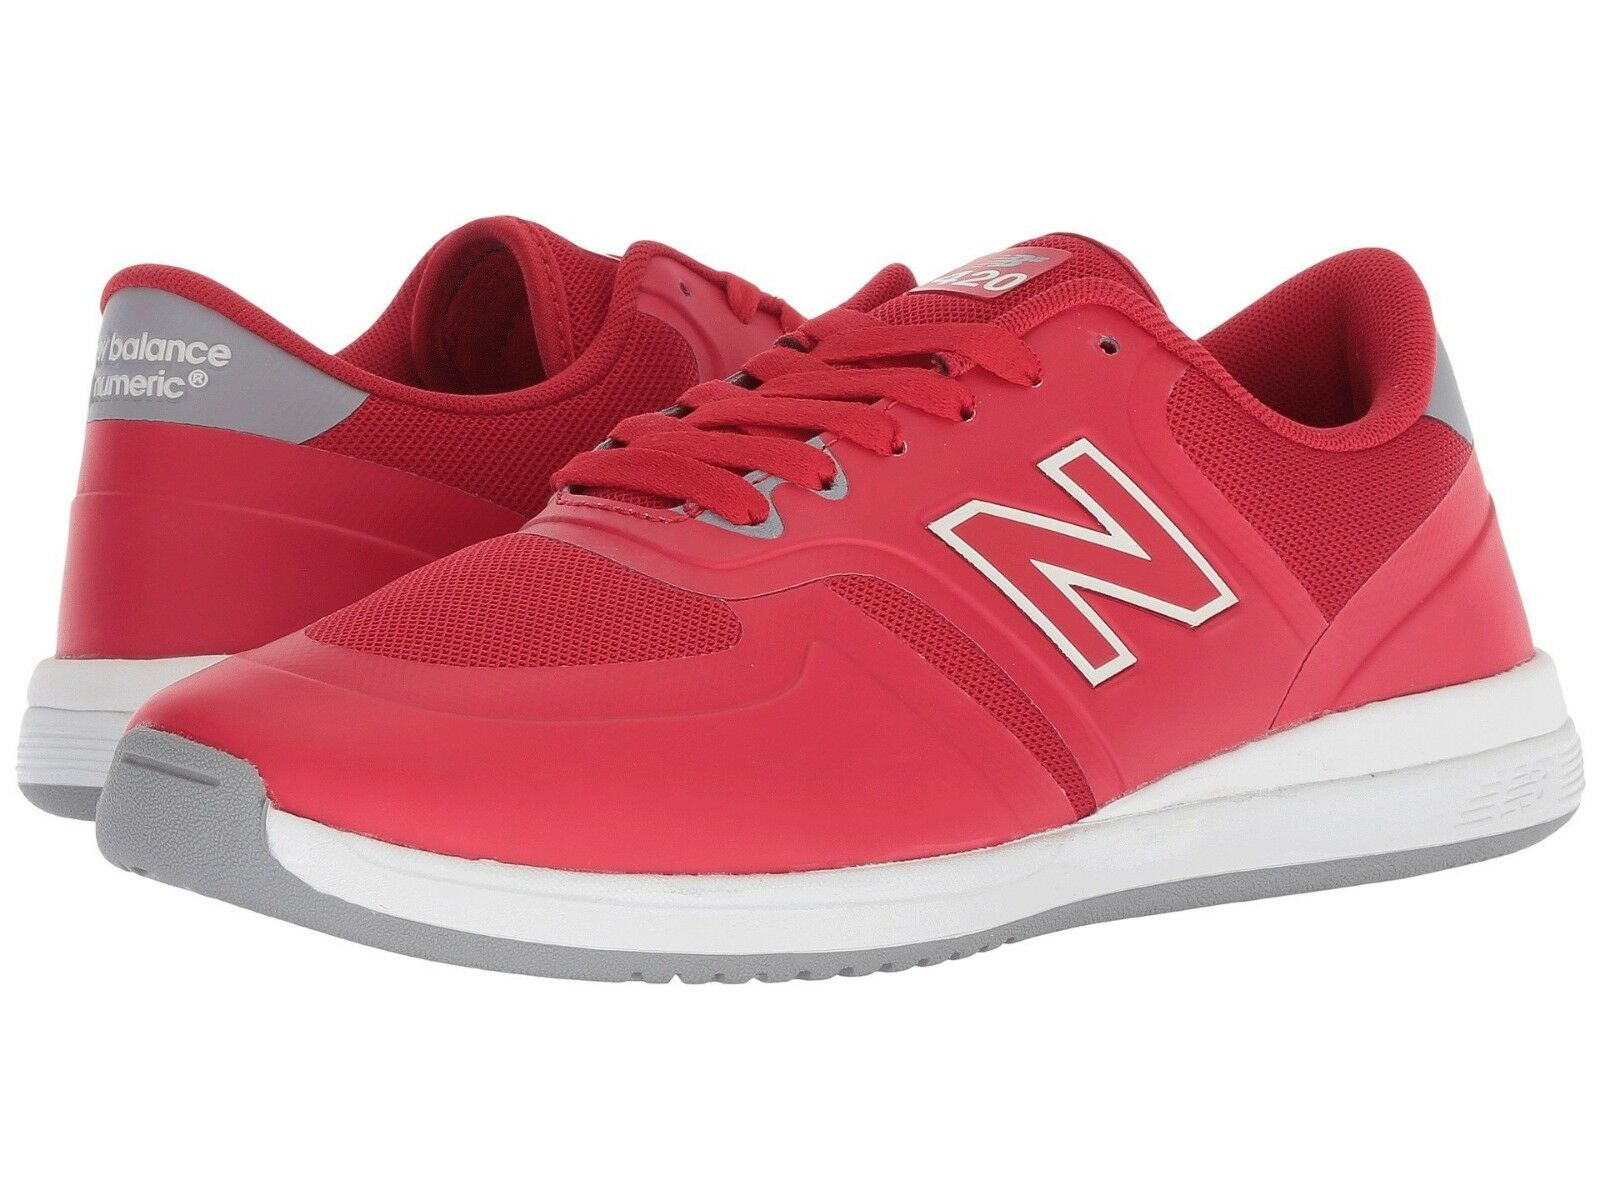 MENS NEW BALANCE NUMERIC 420 SKATEBOARDING SHOES RED WHITE  (RED)